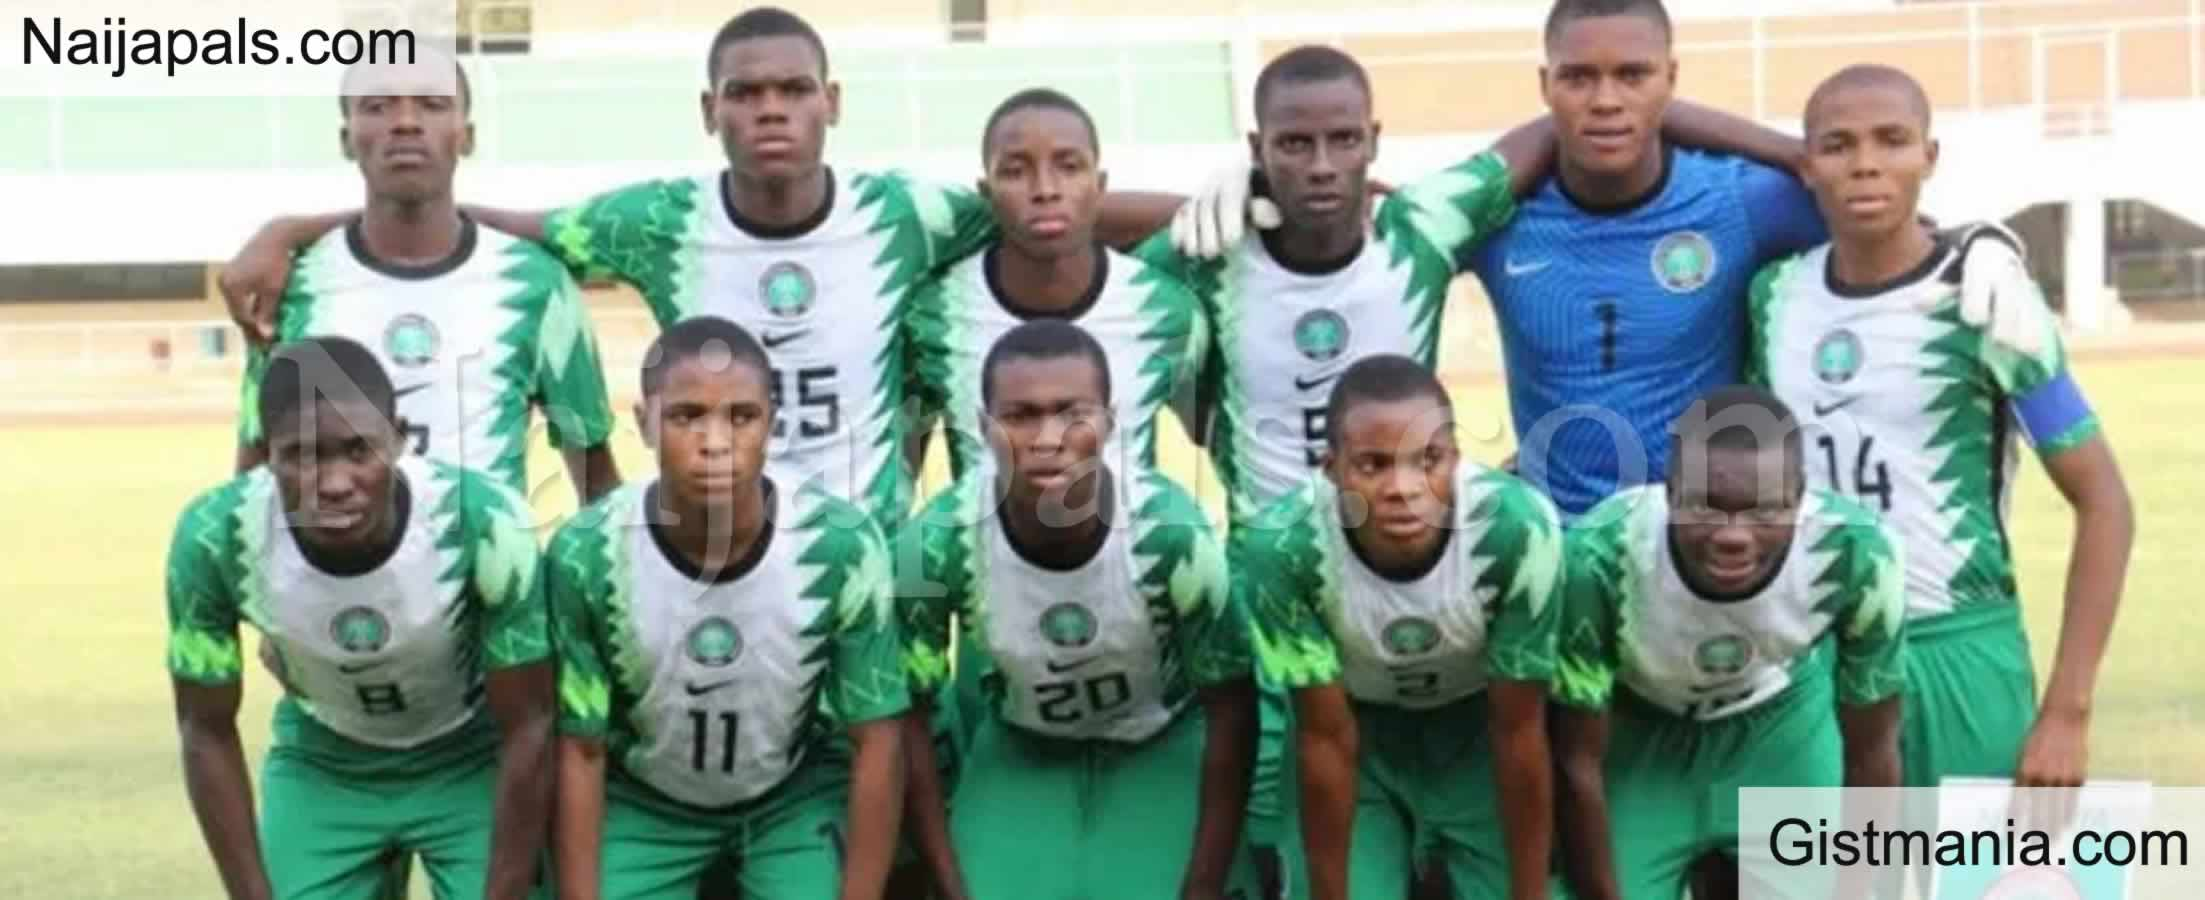 <img alt='.' class='lazyload' data-src='https://img.gistmania.com/emot/soccer.gif' /> <b>Nigeria Golden Eaglets Loses WAFU Final As Cote d'Ivoire Emerges Champions</b>